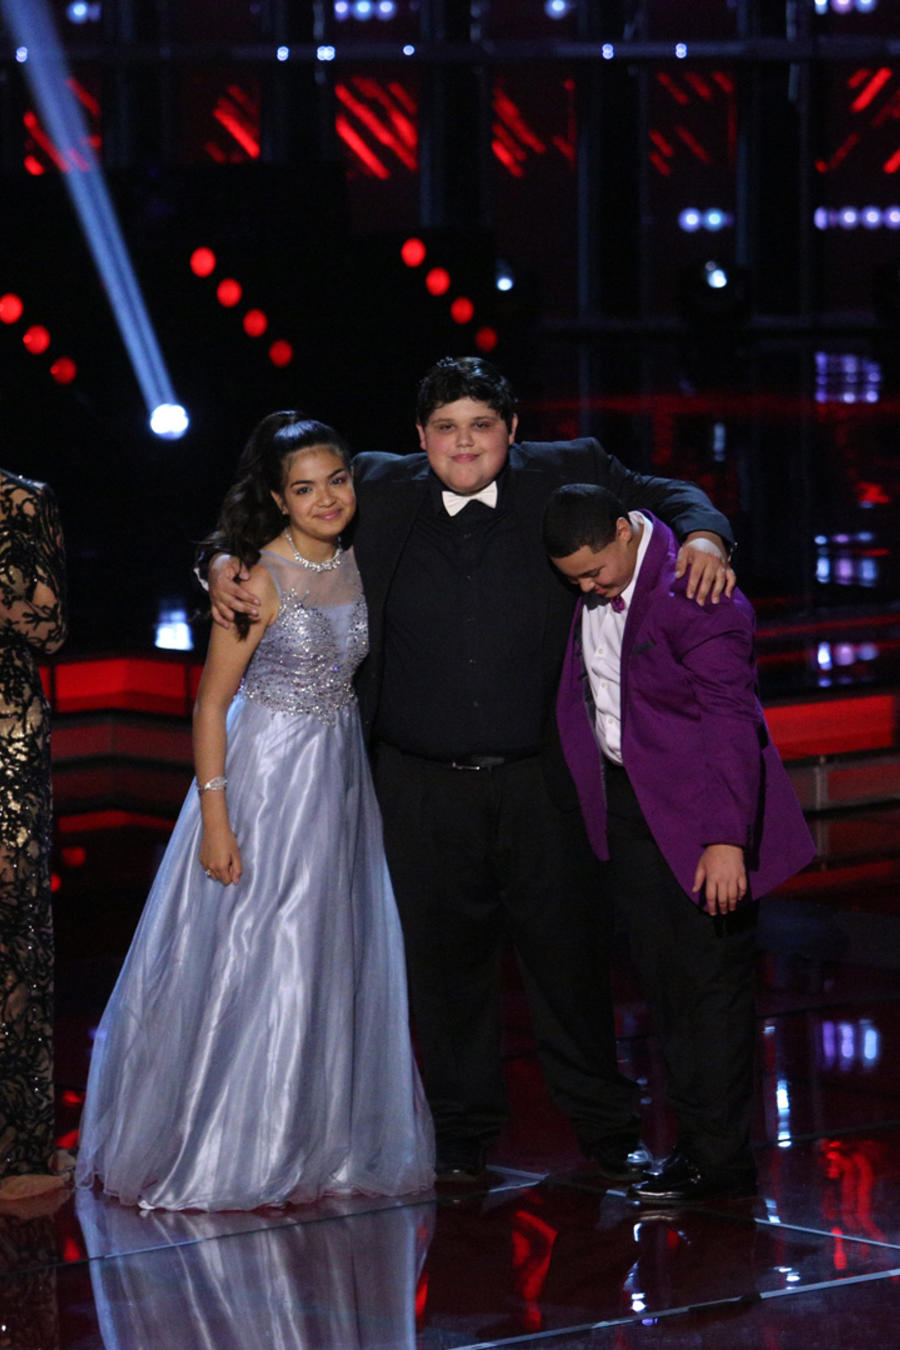 Alejandra Christopher y Axel con Jorge Bernal Patricia Manterola en la final de La Voz Kids 2016